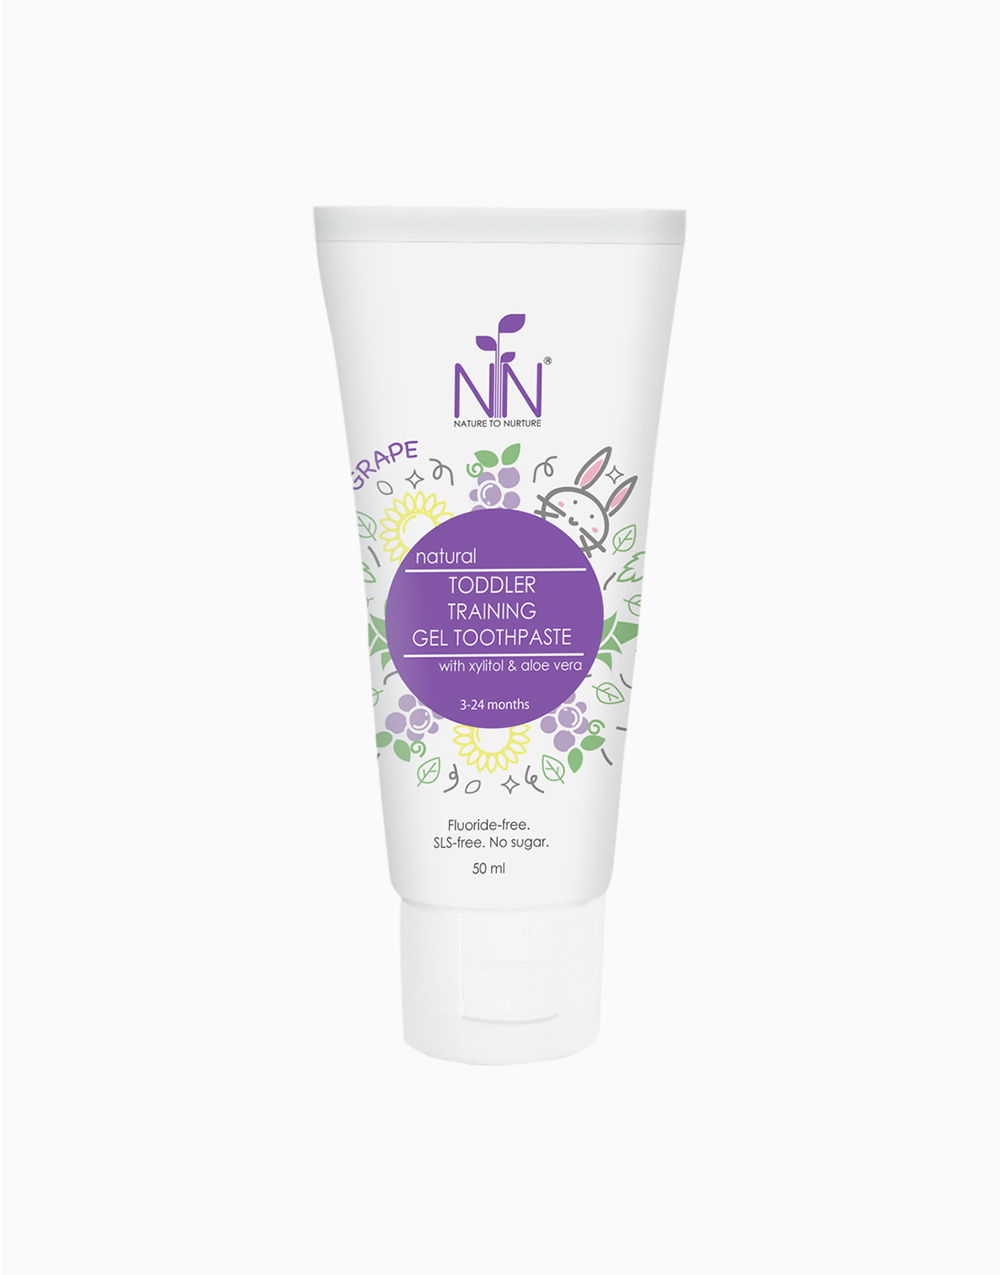 Toddler Training Gel Toothpaste Violet (3 Months to 2 Years Old) by Nature to Nurture